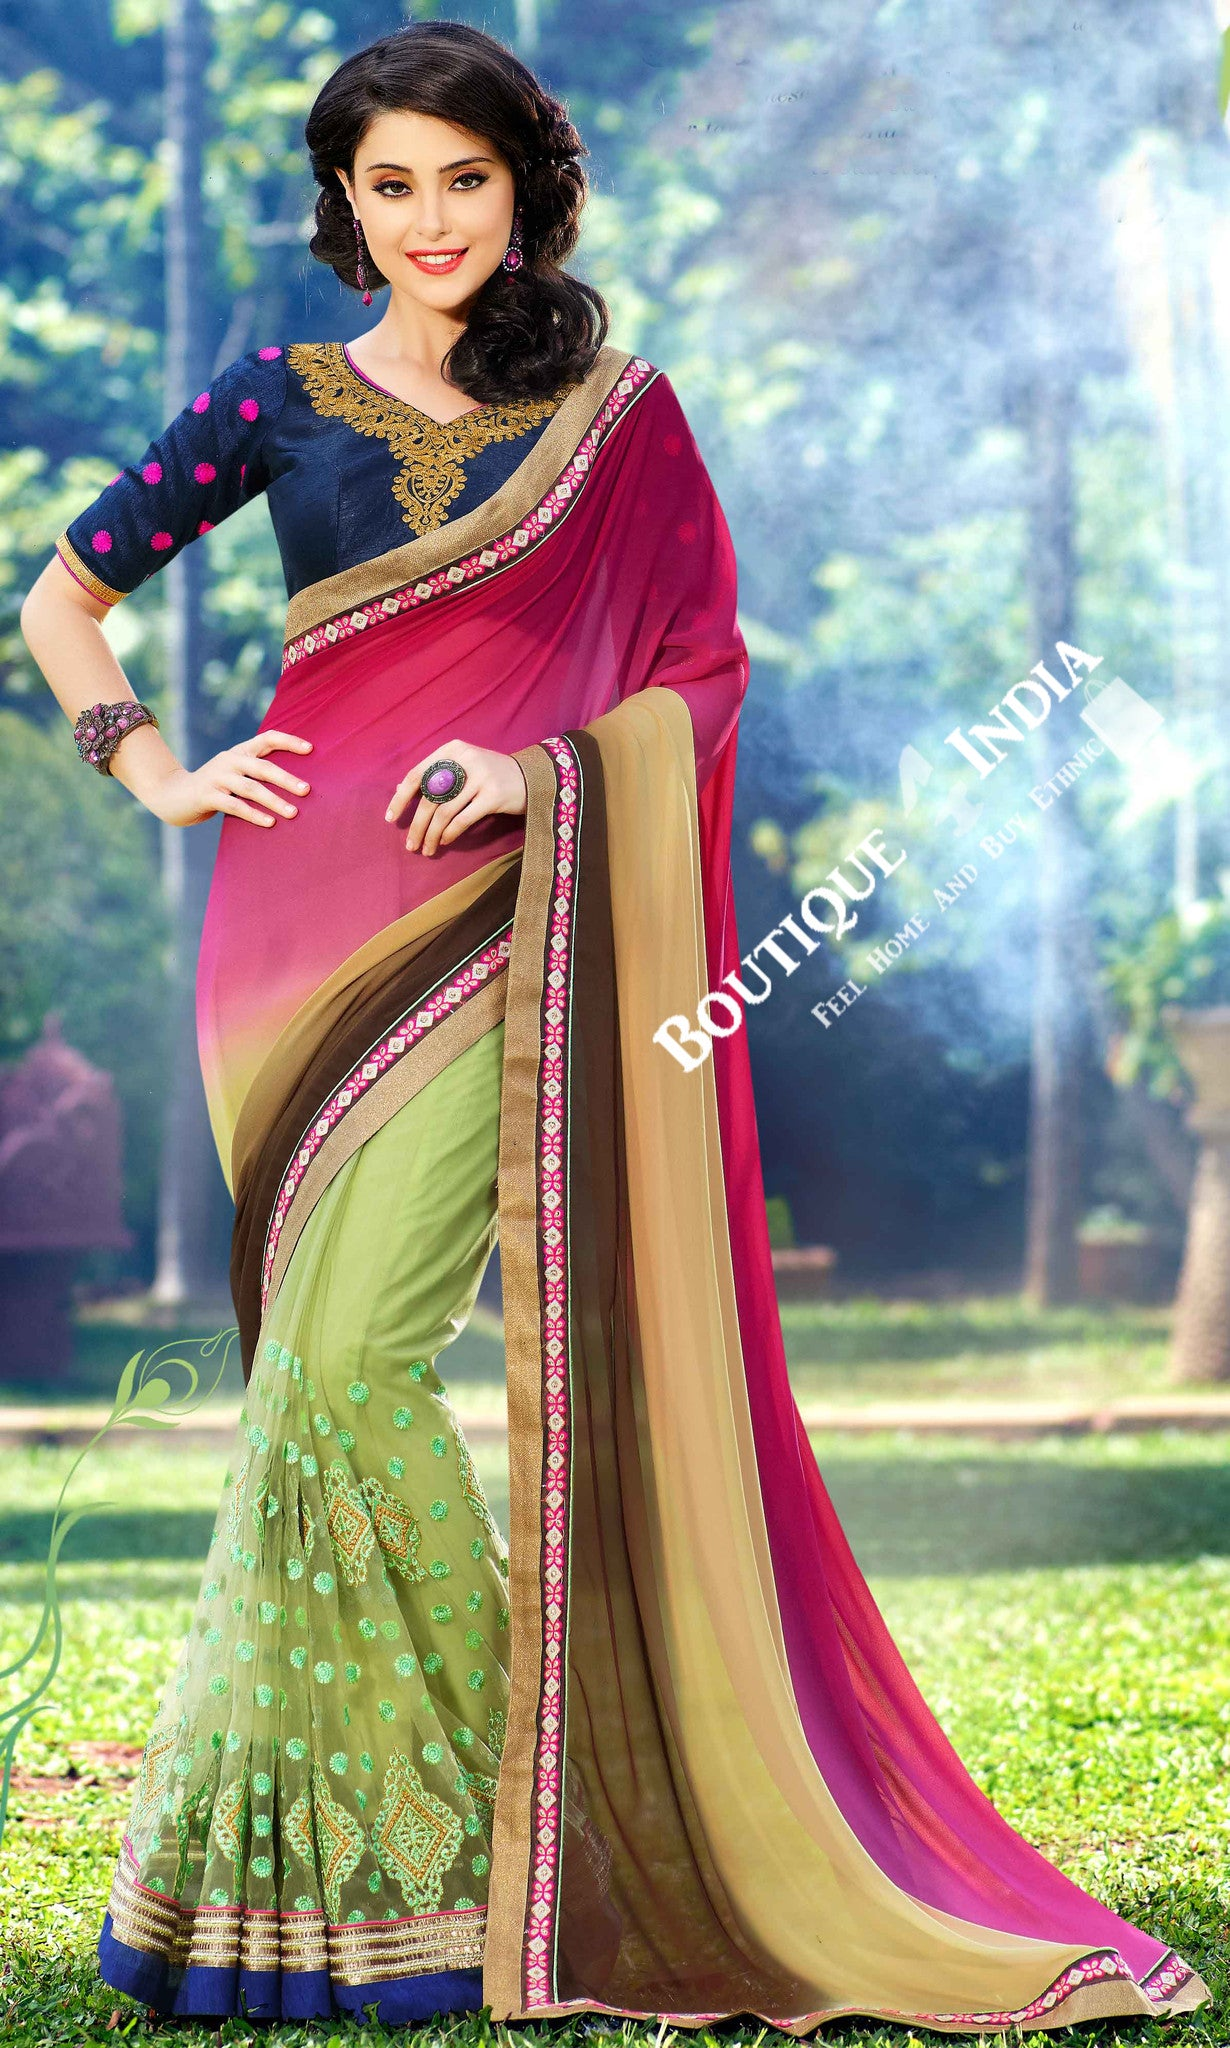 Net Faux Chiffon Saree with Hot Pink, Green and Blue - Boutique4India Inc.